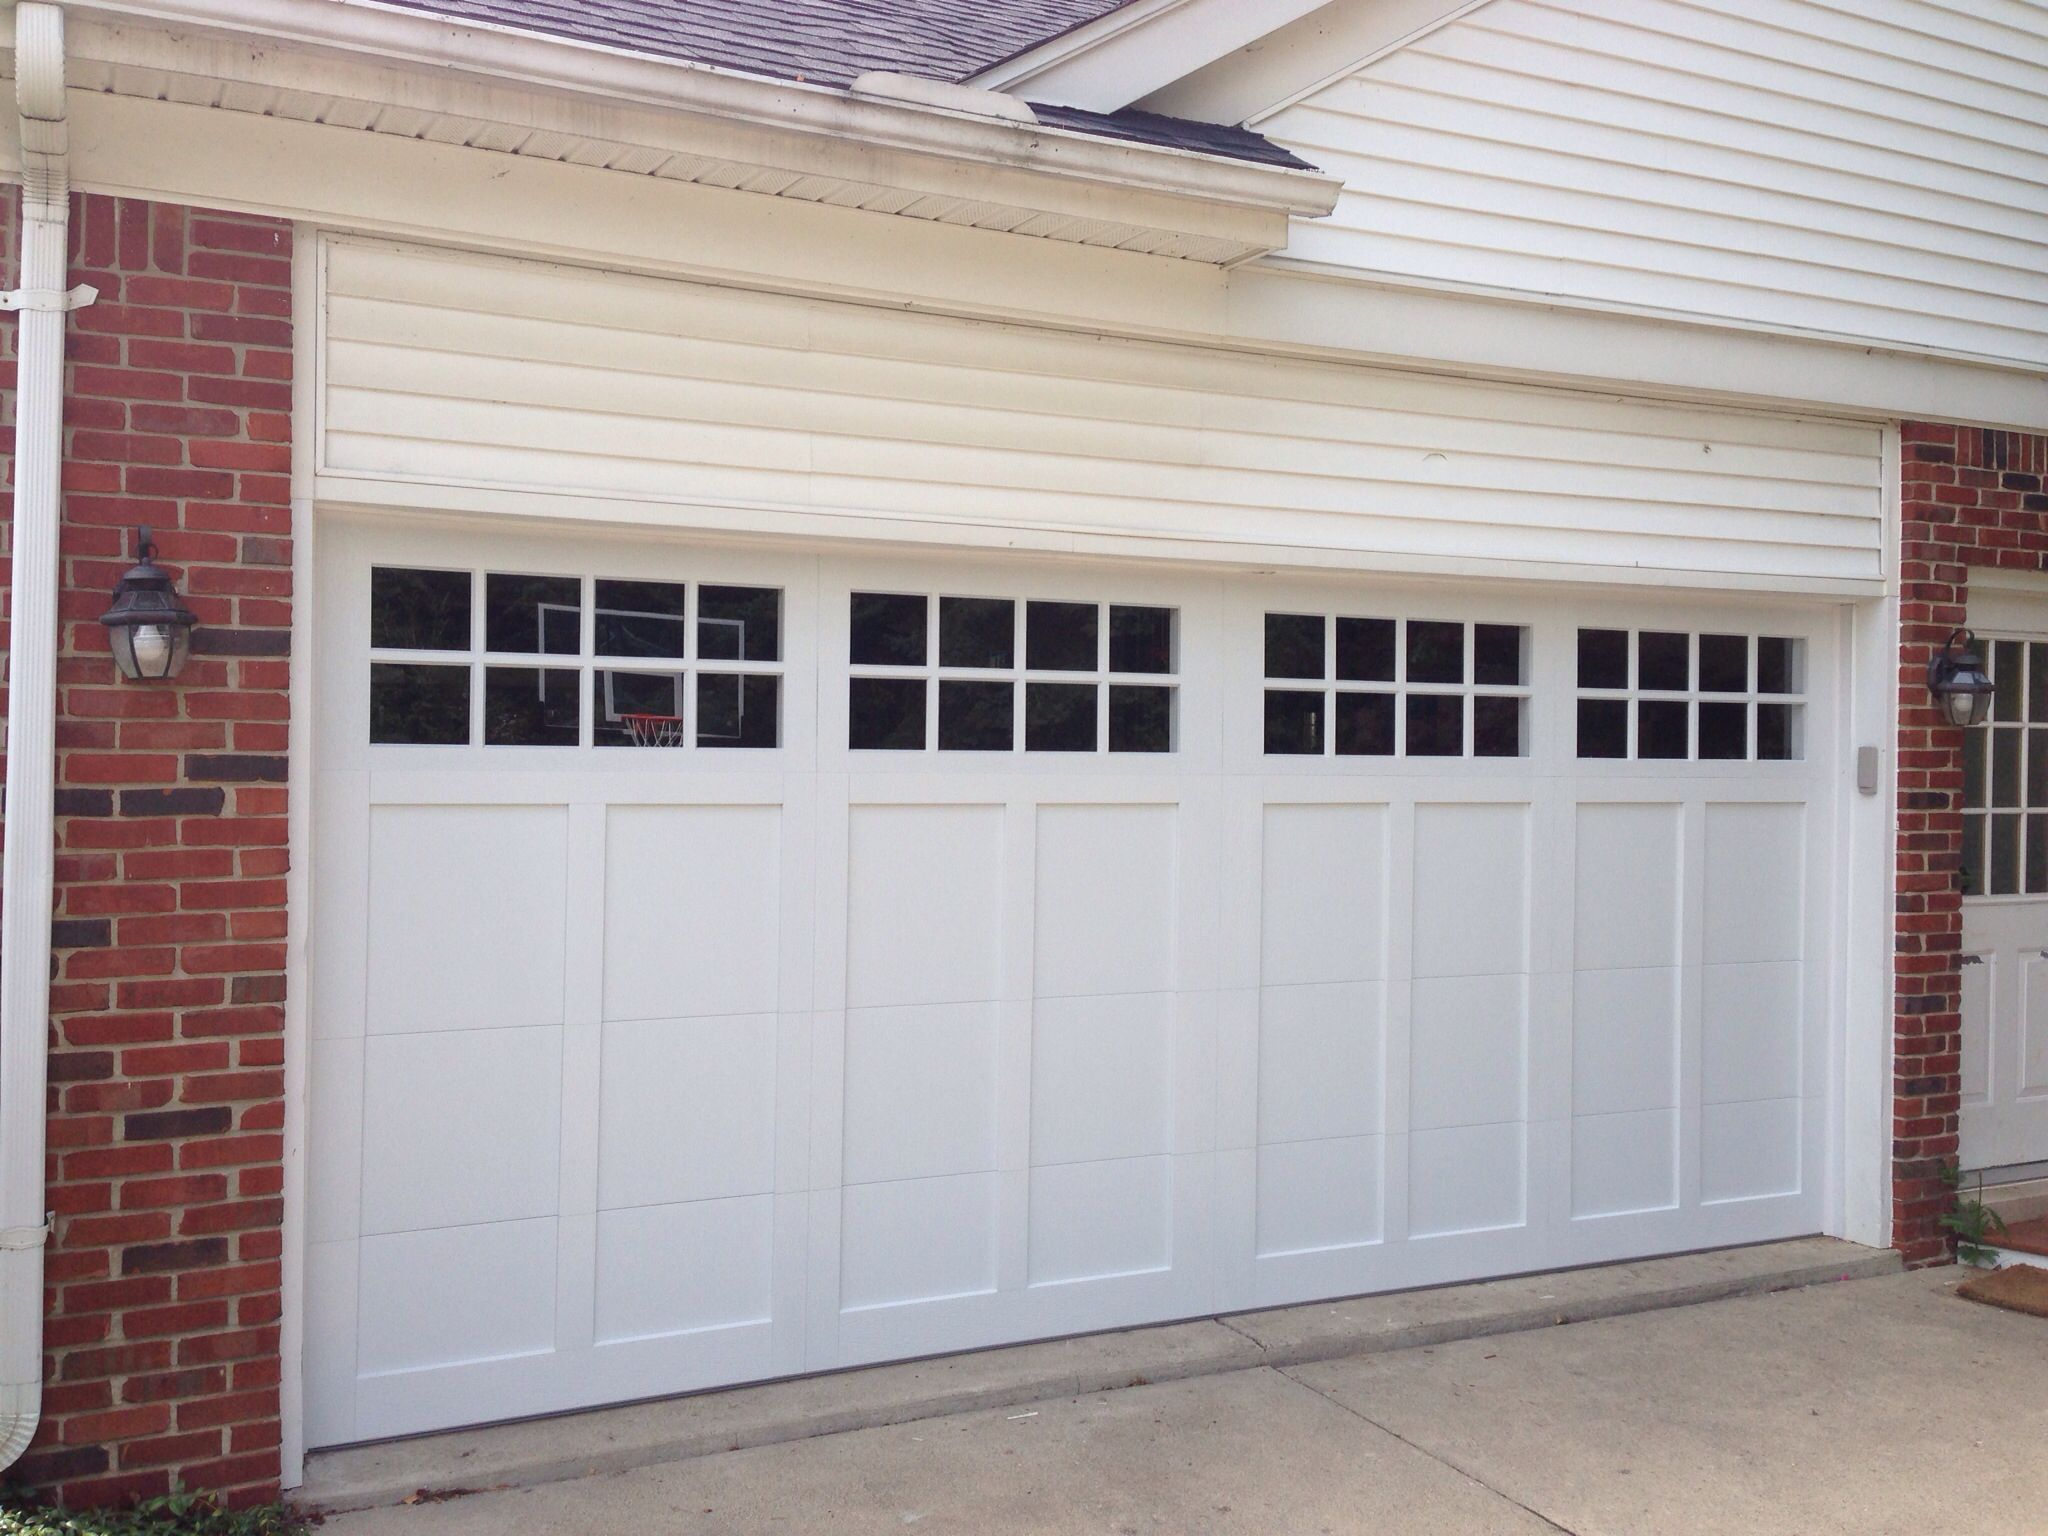 Pin By Angie Gillum On Doors In 2020 Chi Garage Doors Garage Doors Diy Garage Door